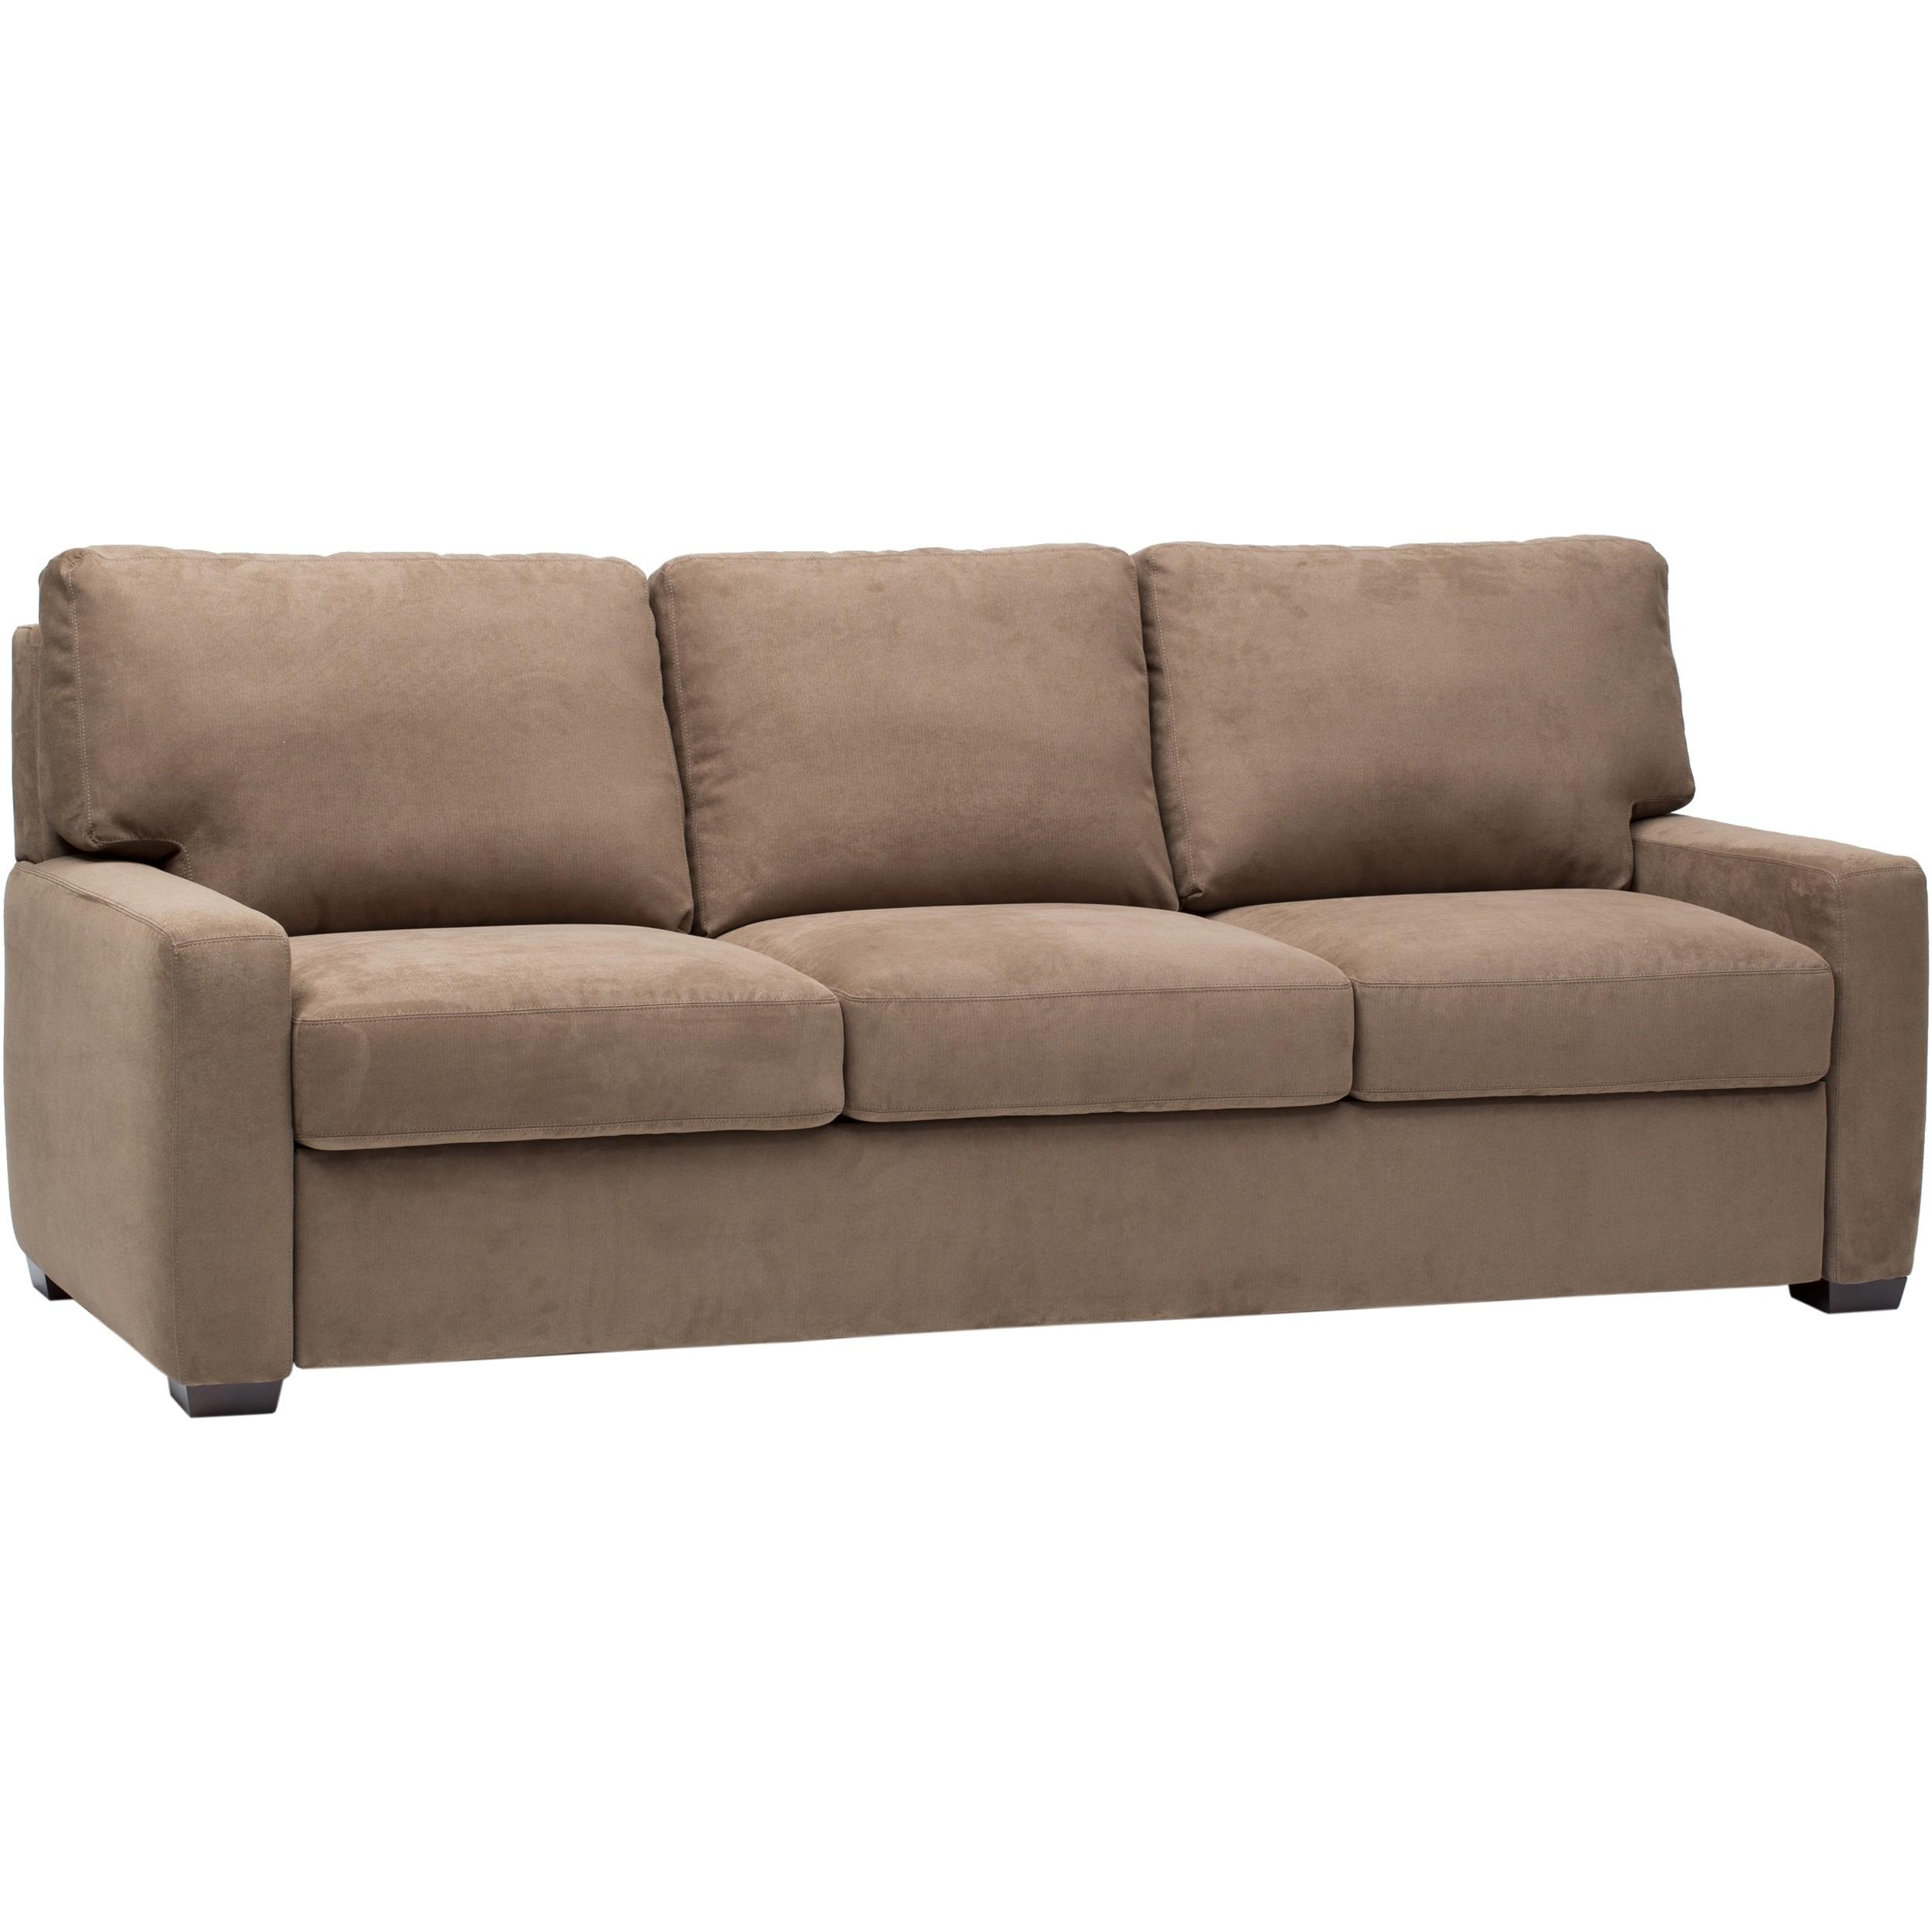 Furniture: Comfortable Tempurpedic Sleeper Sofa For Relax Your Throughout King Size Sleeper Sofa Sectional (View 10 of 20)